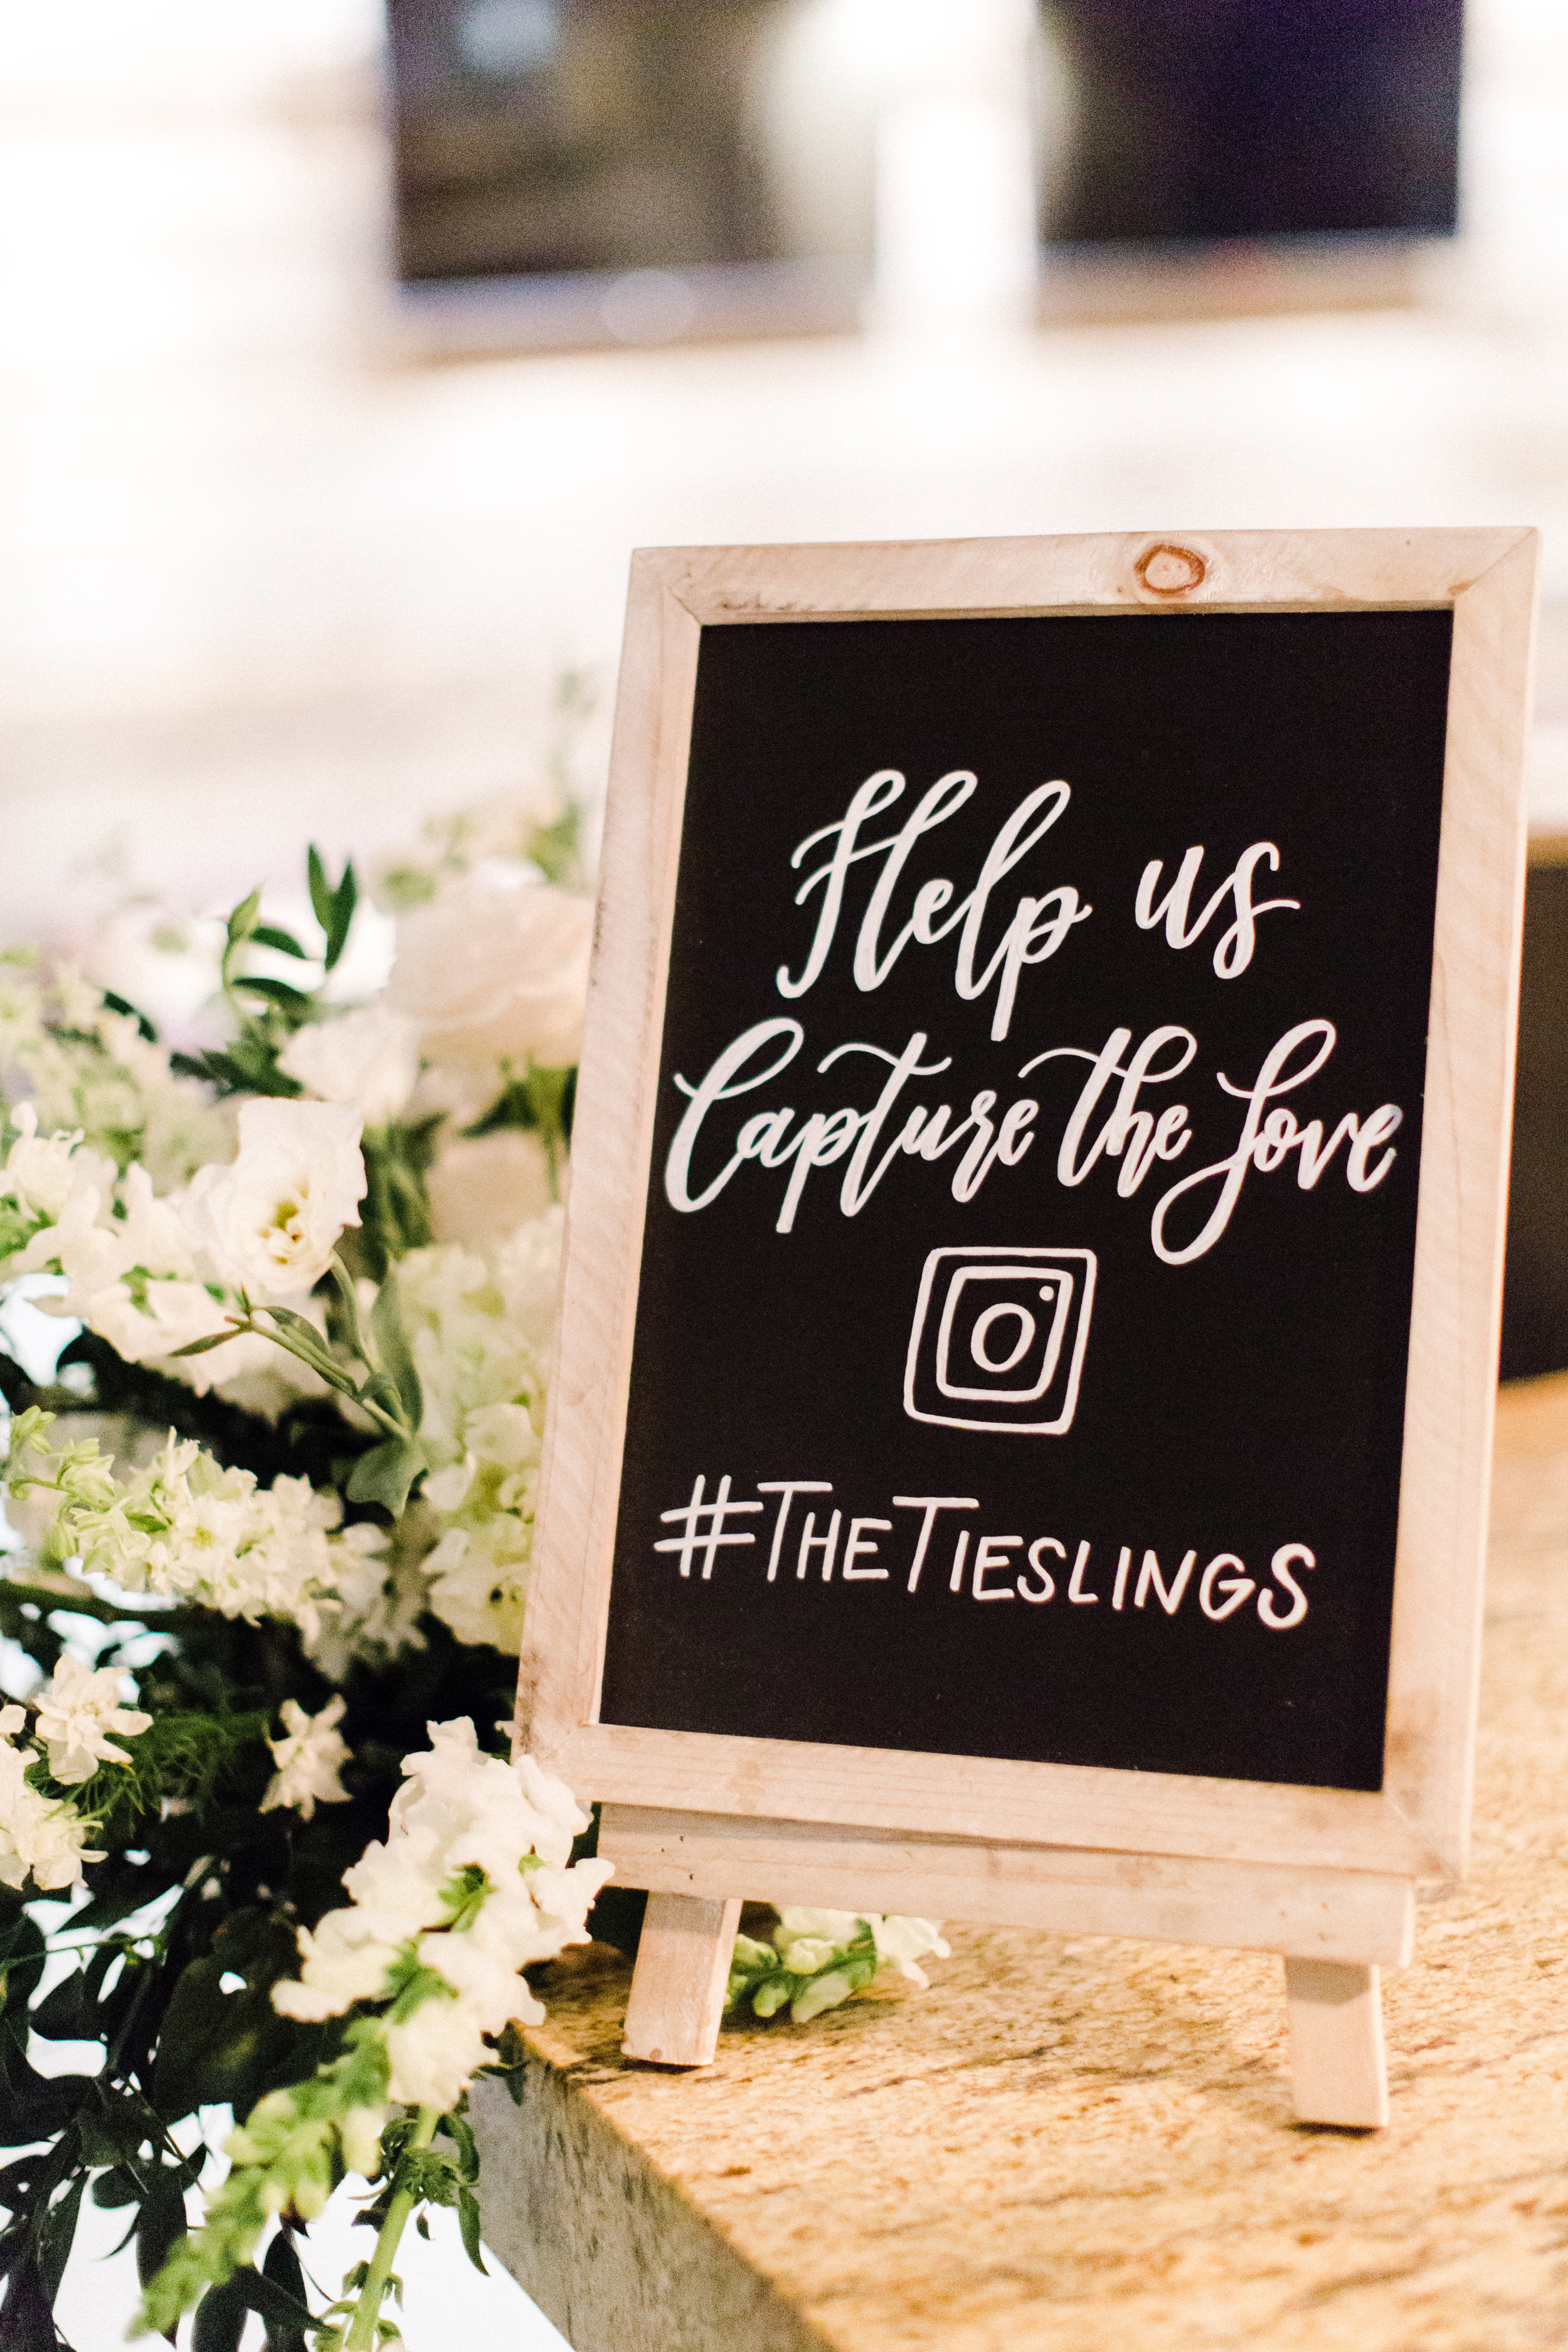 Temecula Winery Wedding   Anna Delores Photography   Pirouette Paper   Custom invitations, paper goods, signage and day of details   Galway Downs Wedding